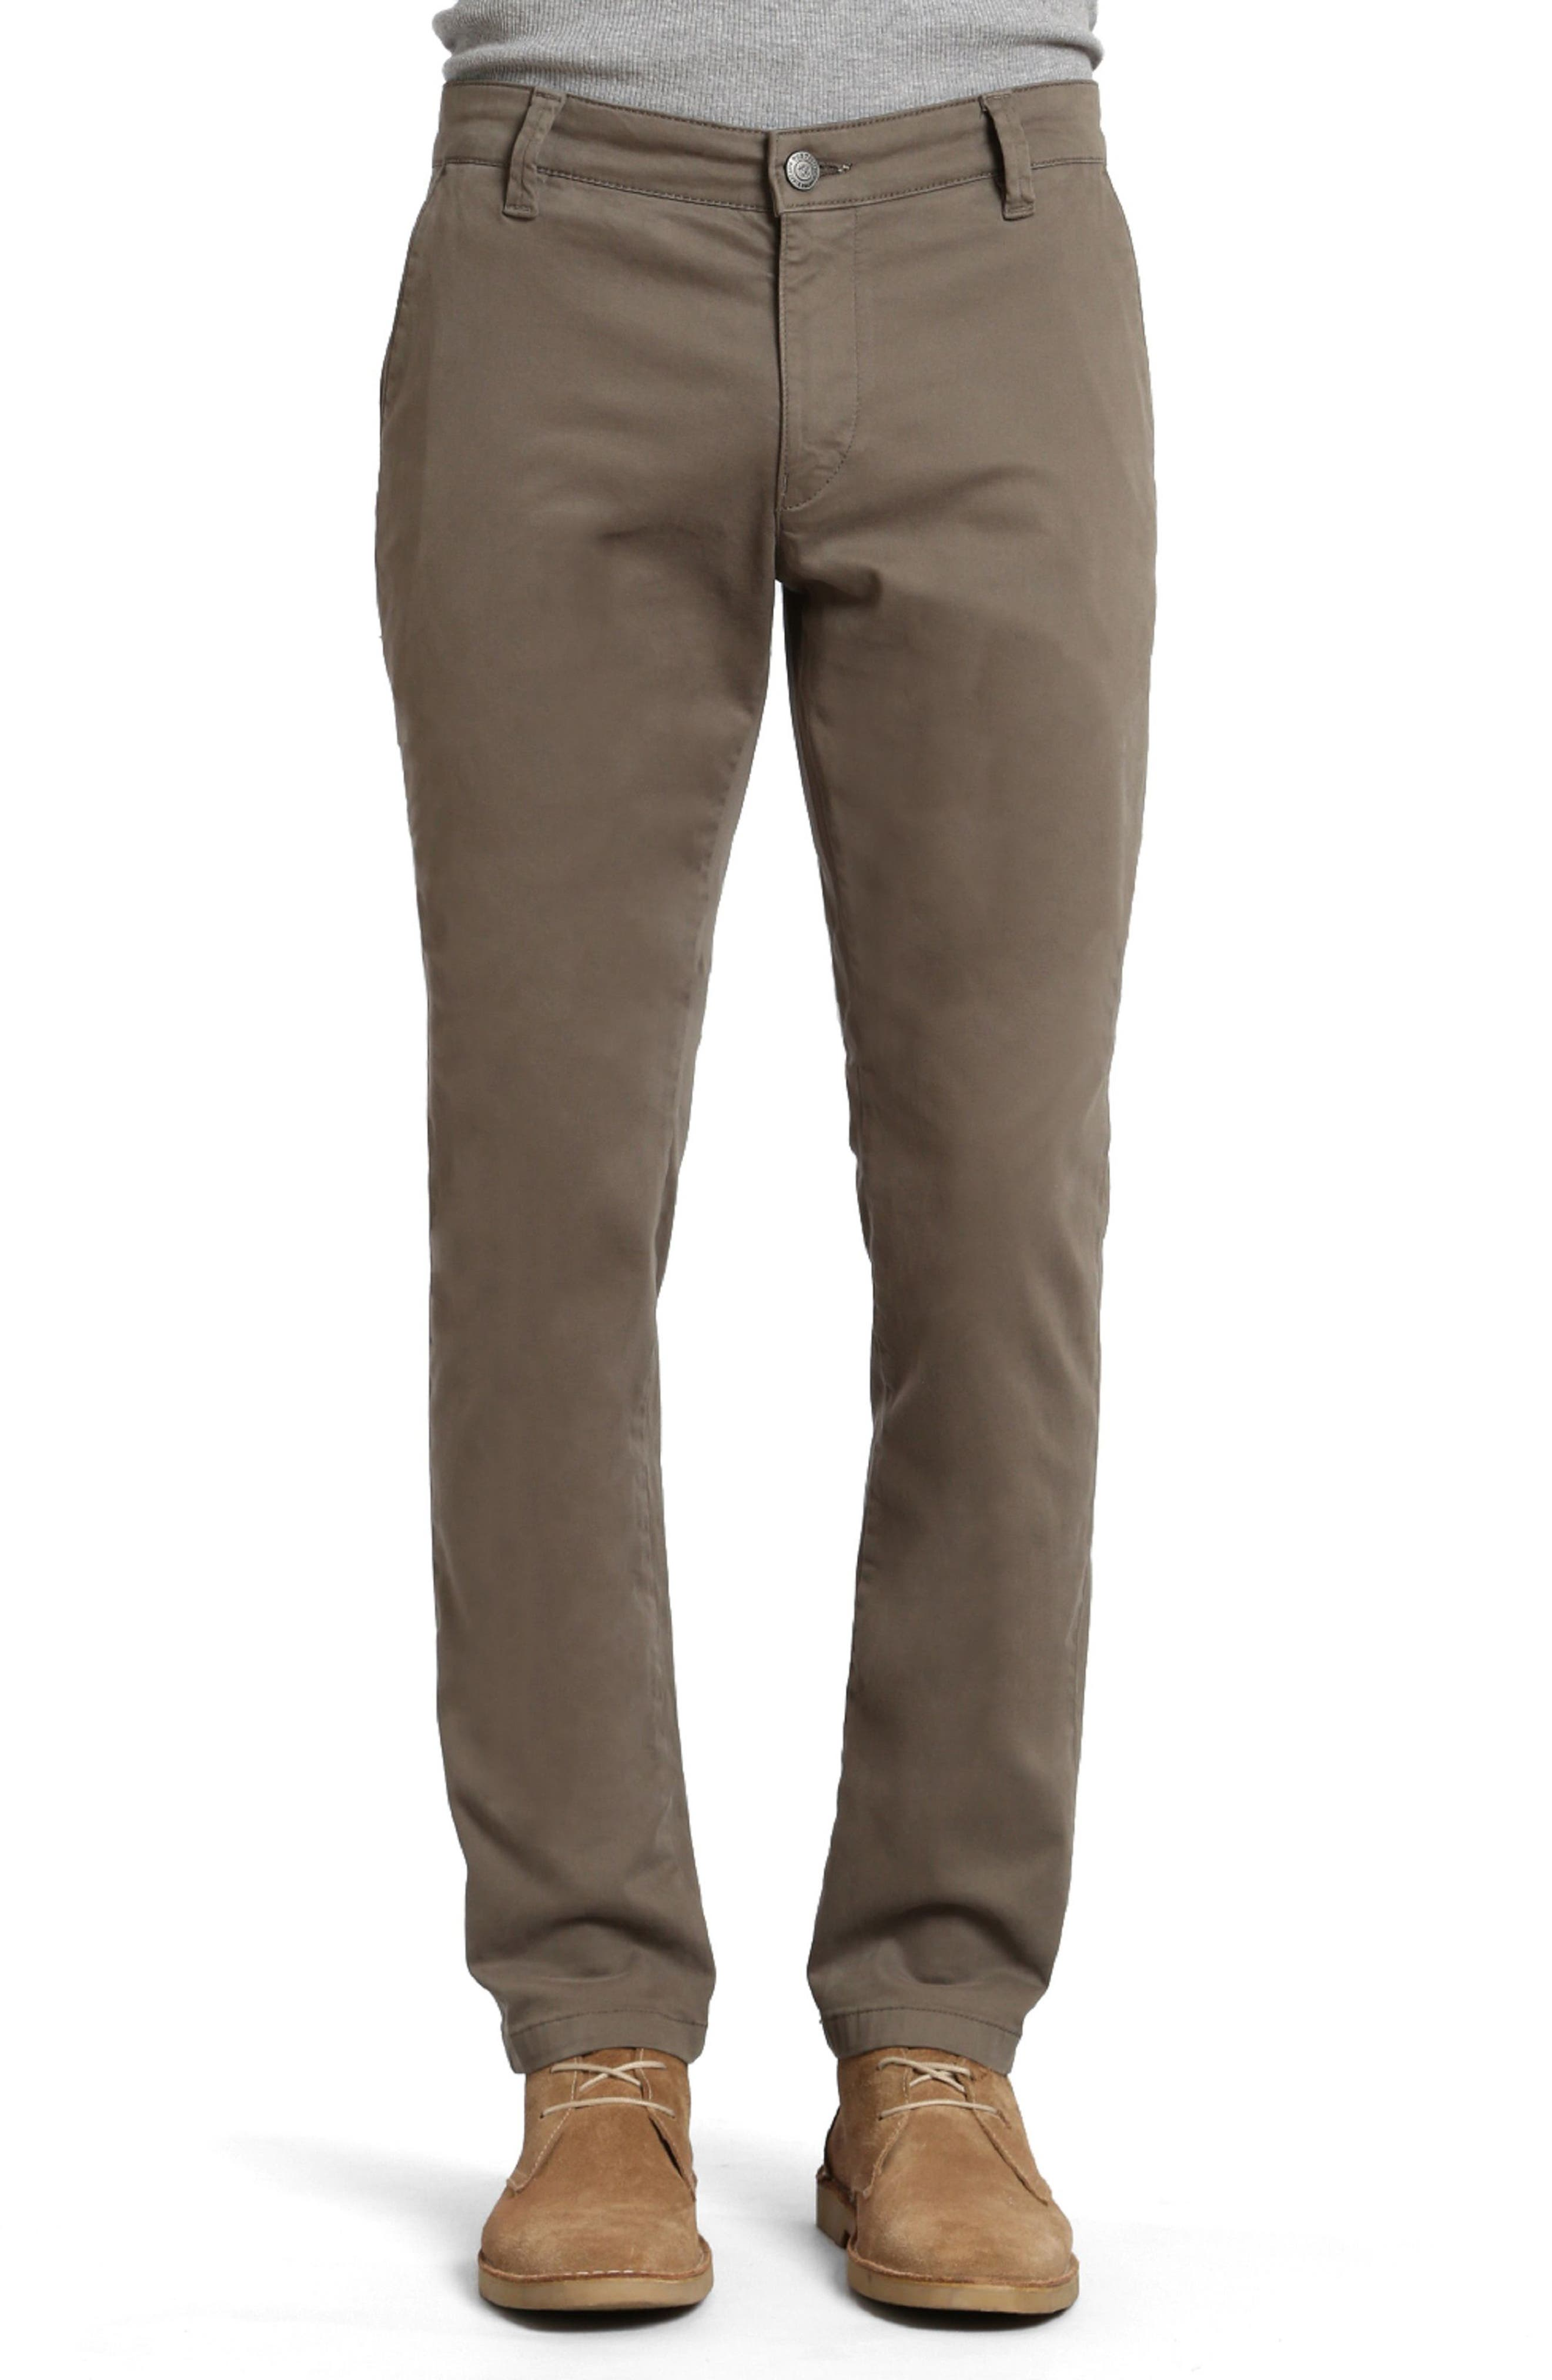 Johnny Twill Pants,                         Main,                         color, Dusty Olive Twill